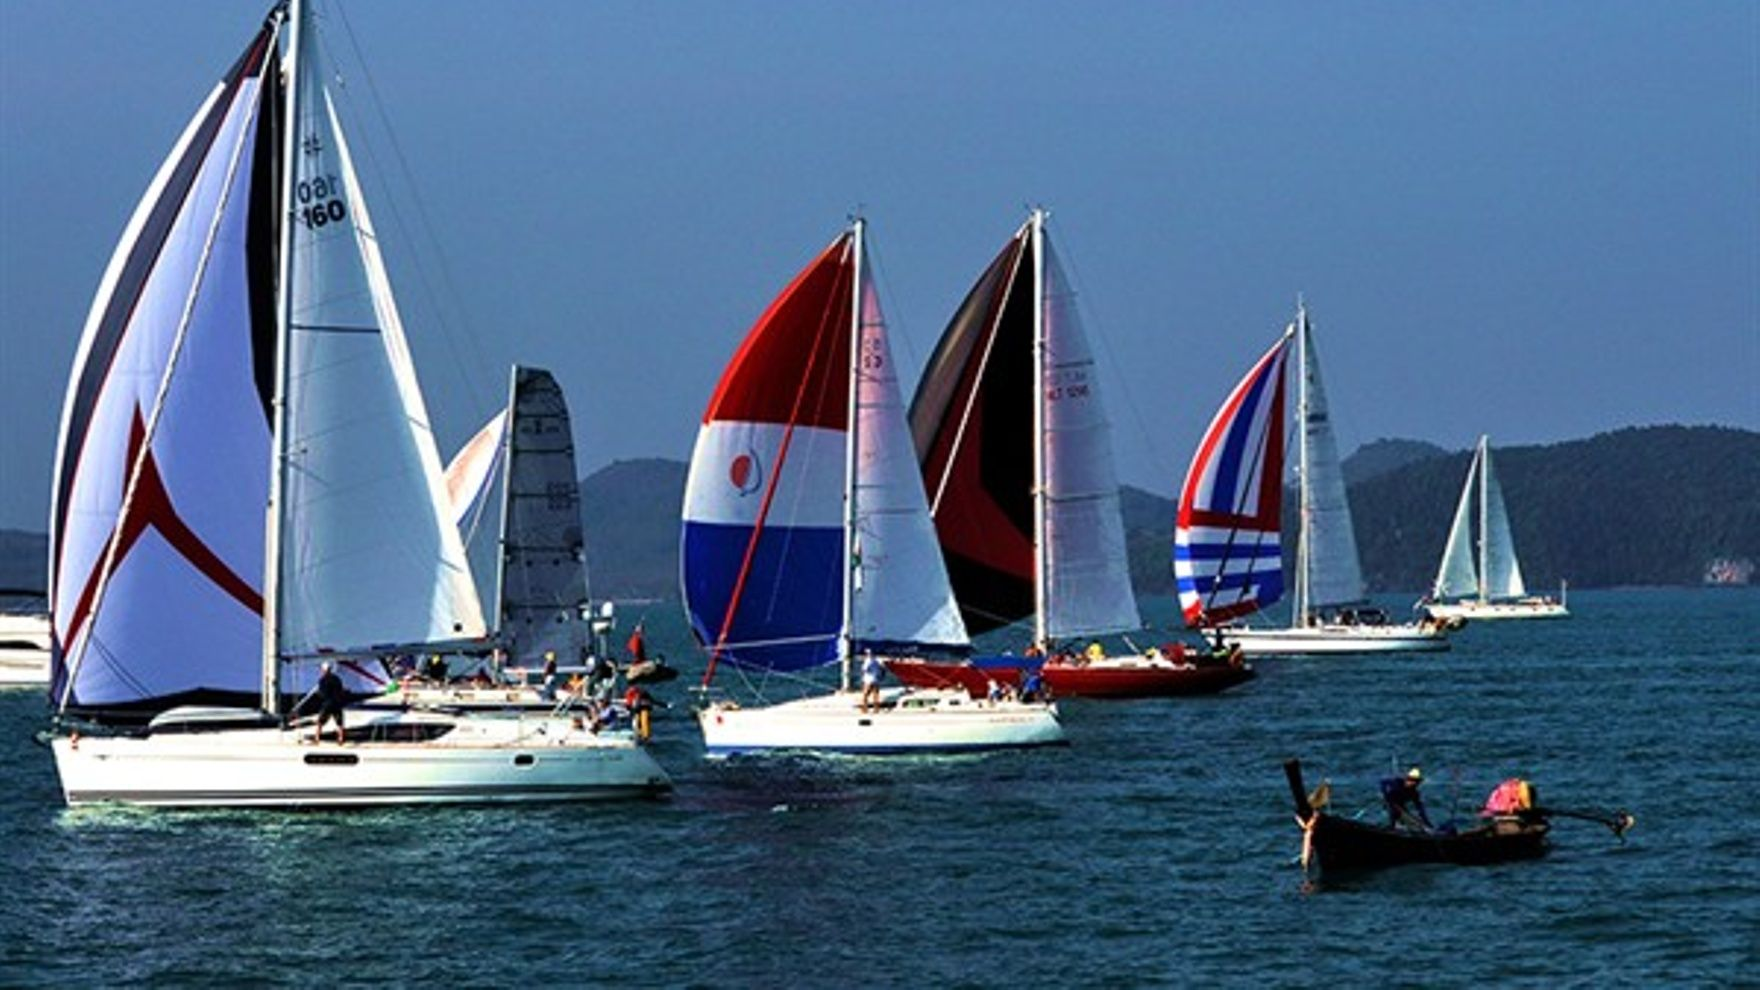 THE BAY REGATTA 2021